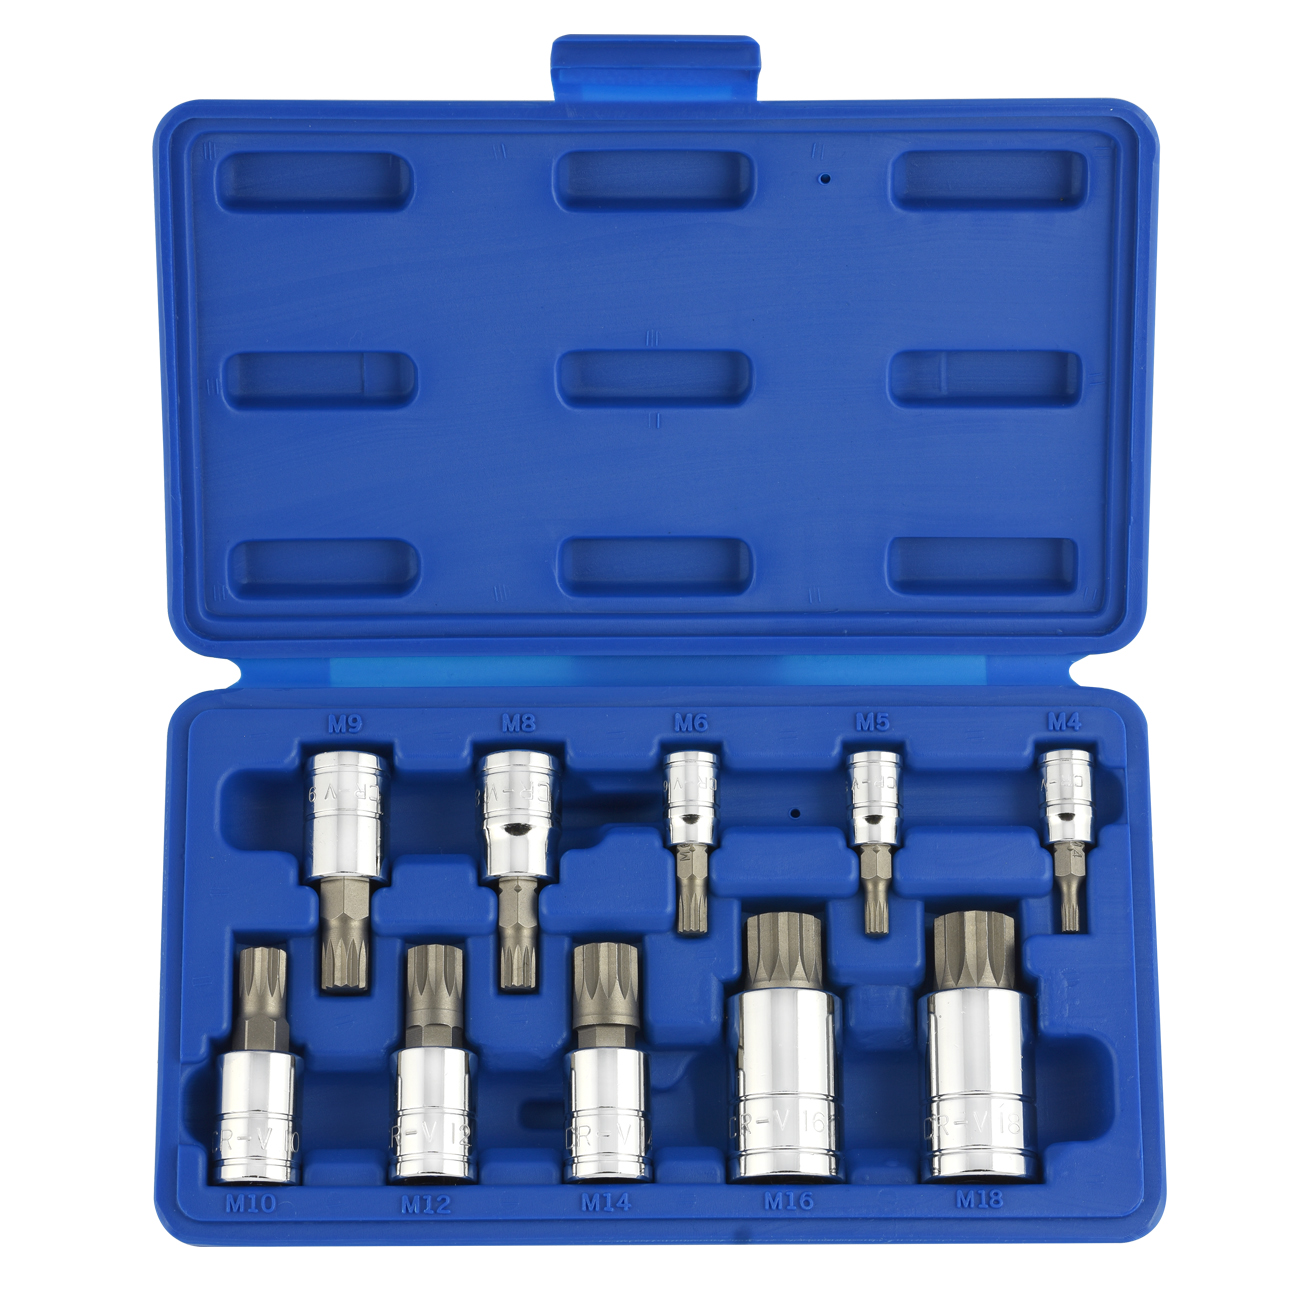 10pc Xzn 12 Point Mm Triple Square Spline Bit Socket Set